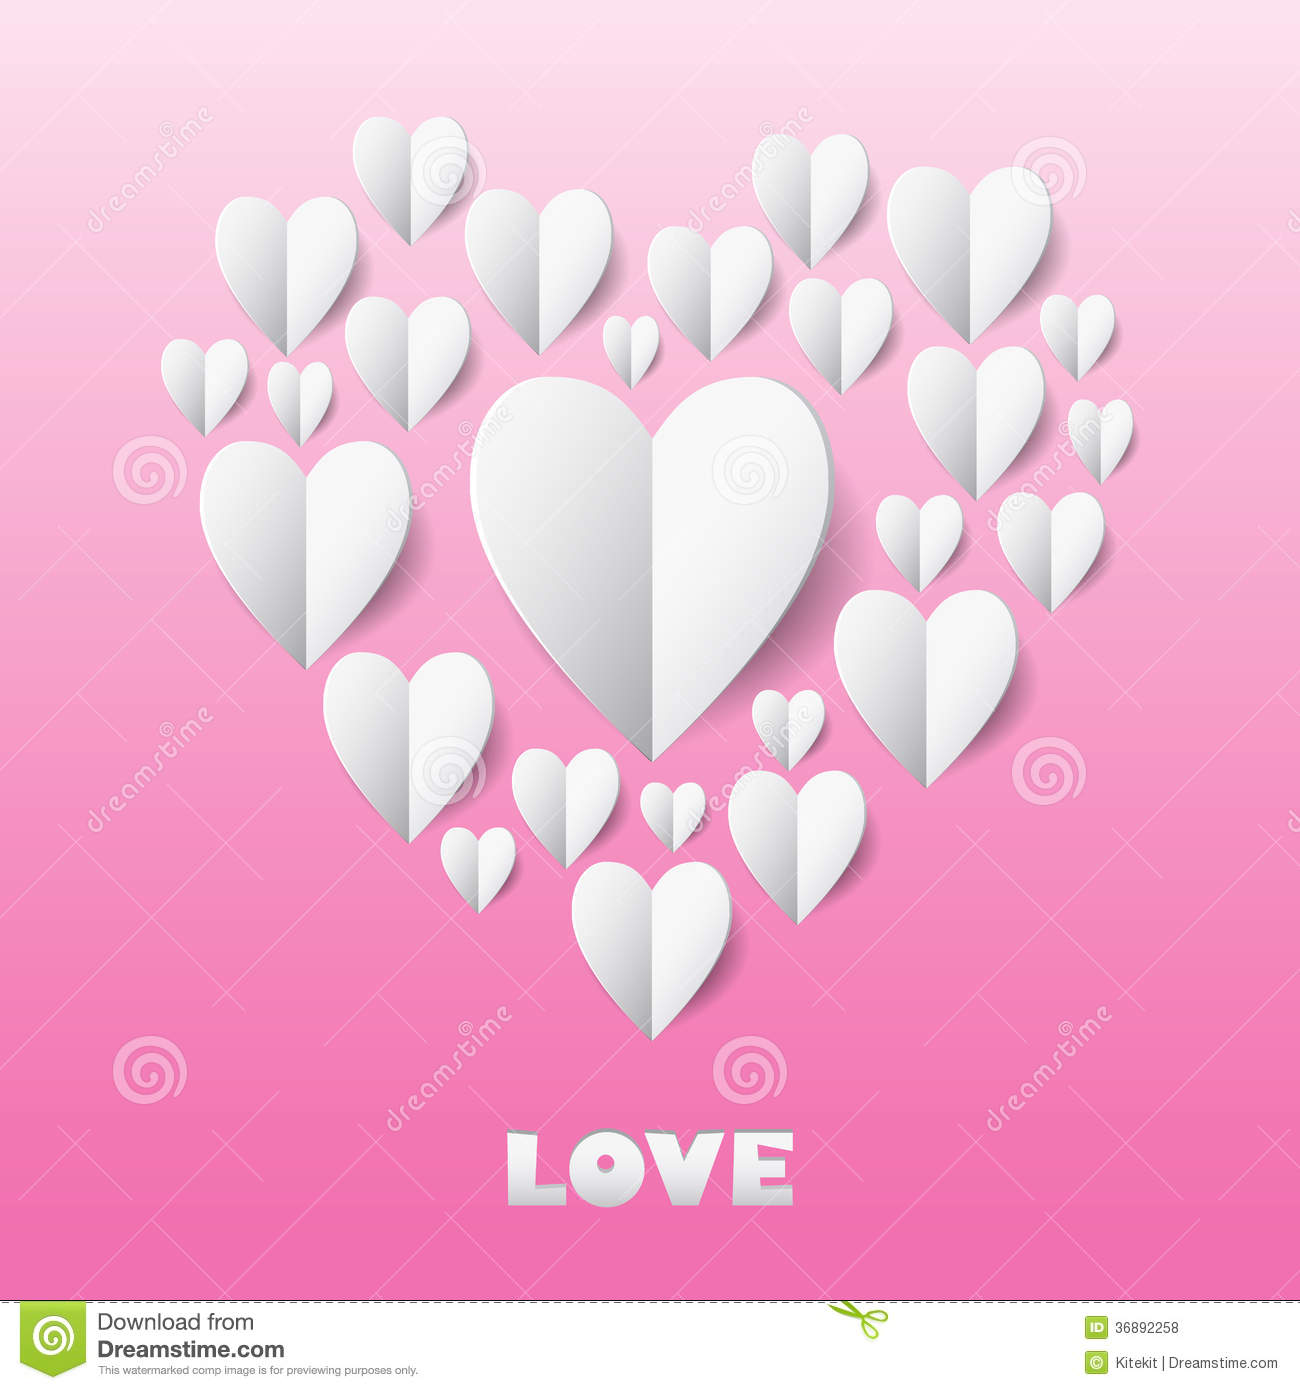 Paper heart love card template for design greeting card The designlover